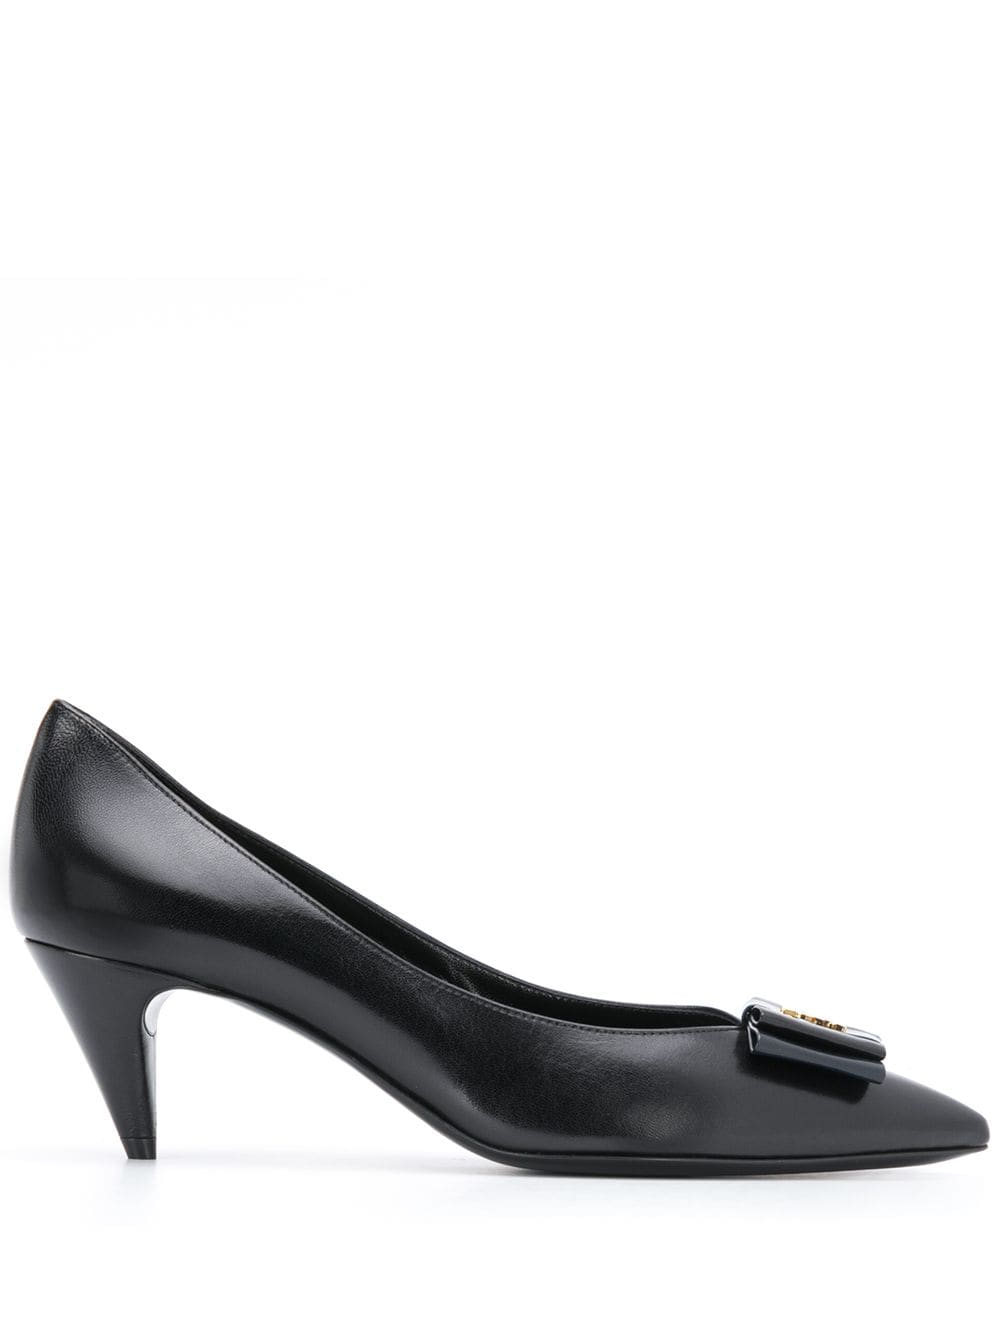 Pierrot Leather Pumps